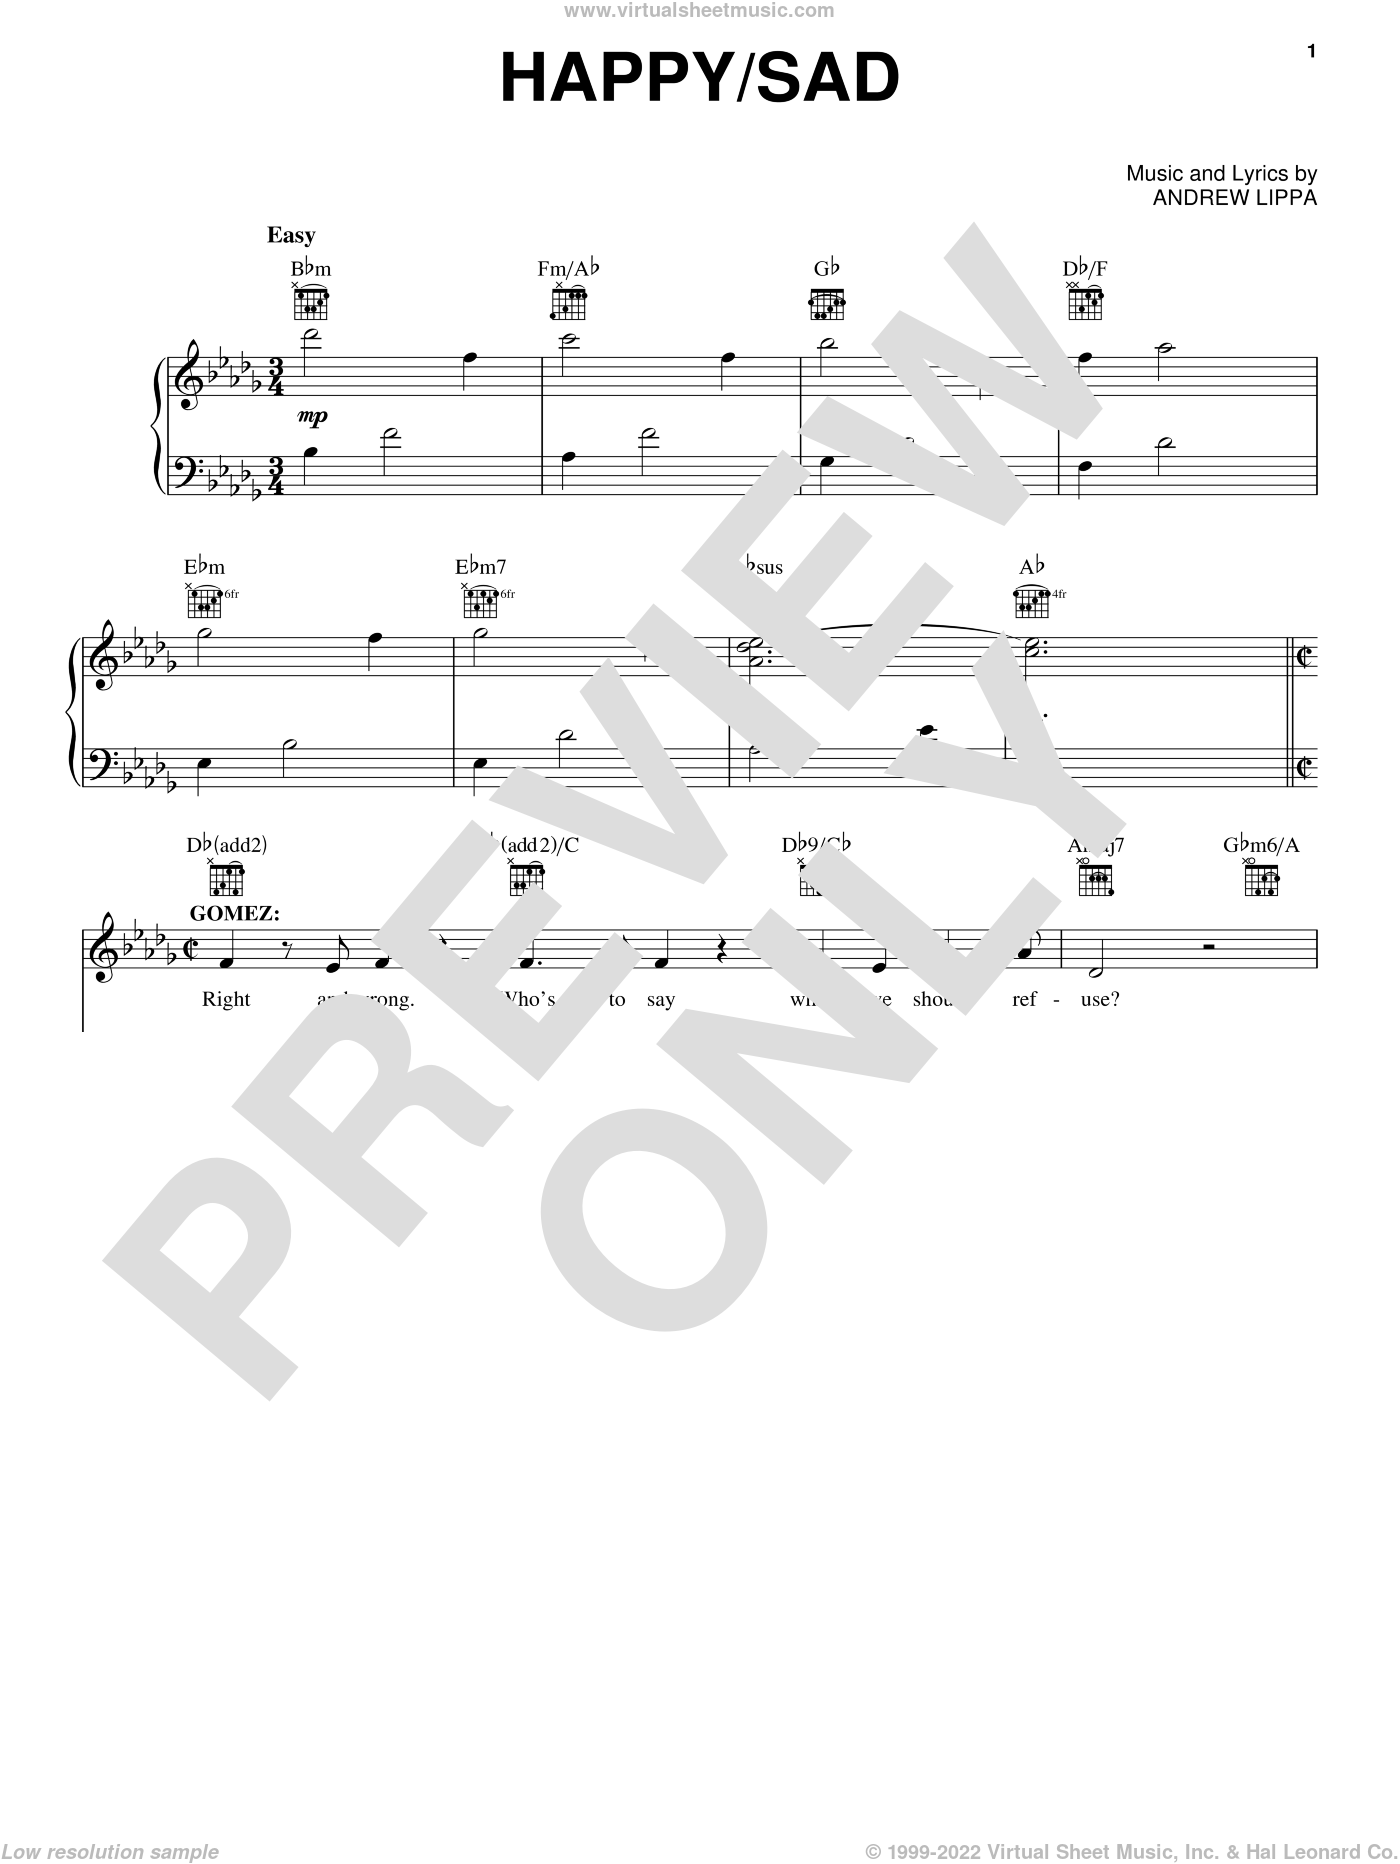 Happy / Sad sheet music for voice and piano by Andrew Lippa and The Addams Family (Musical), intermediate skill level